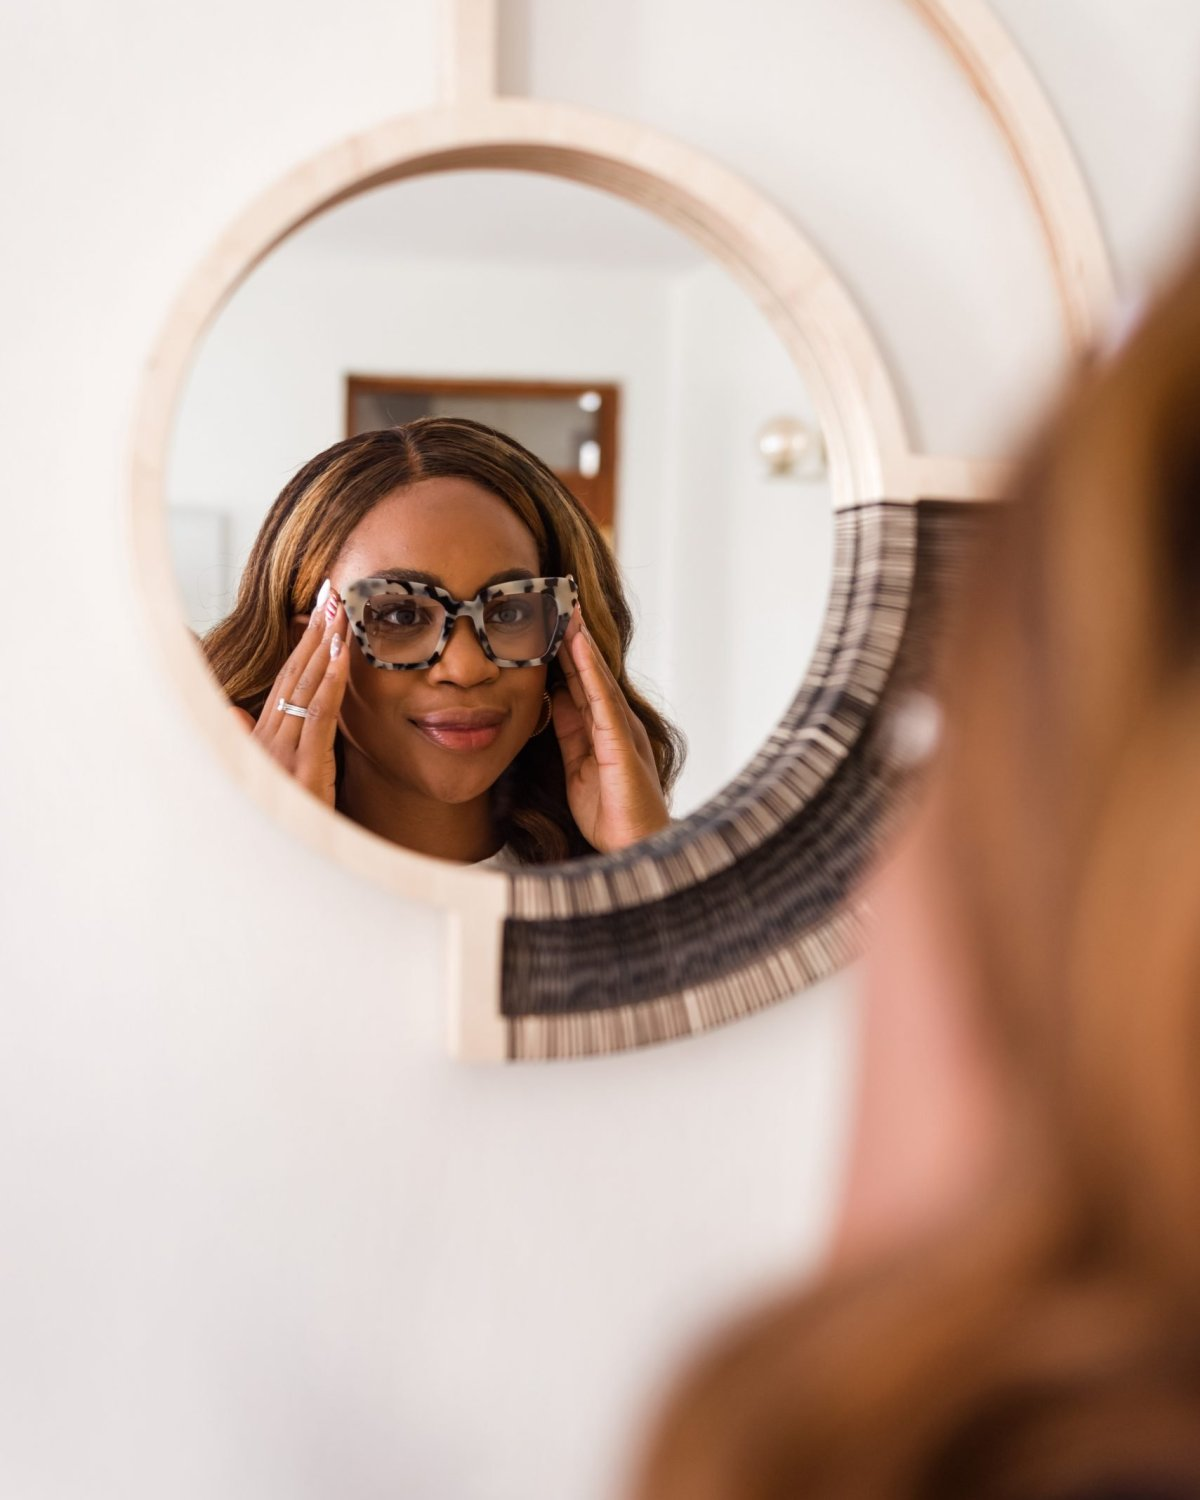 Ijeoma Kola looking in round wall mirror while adjusting eyeglasses